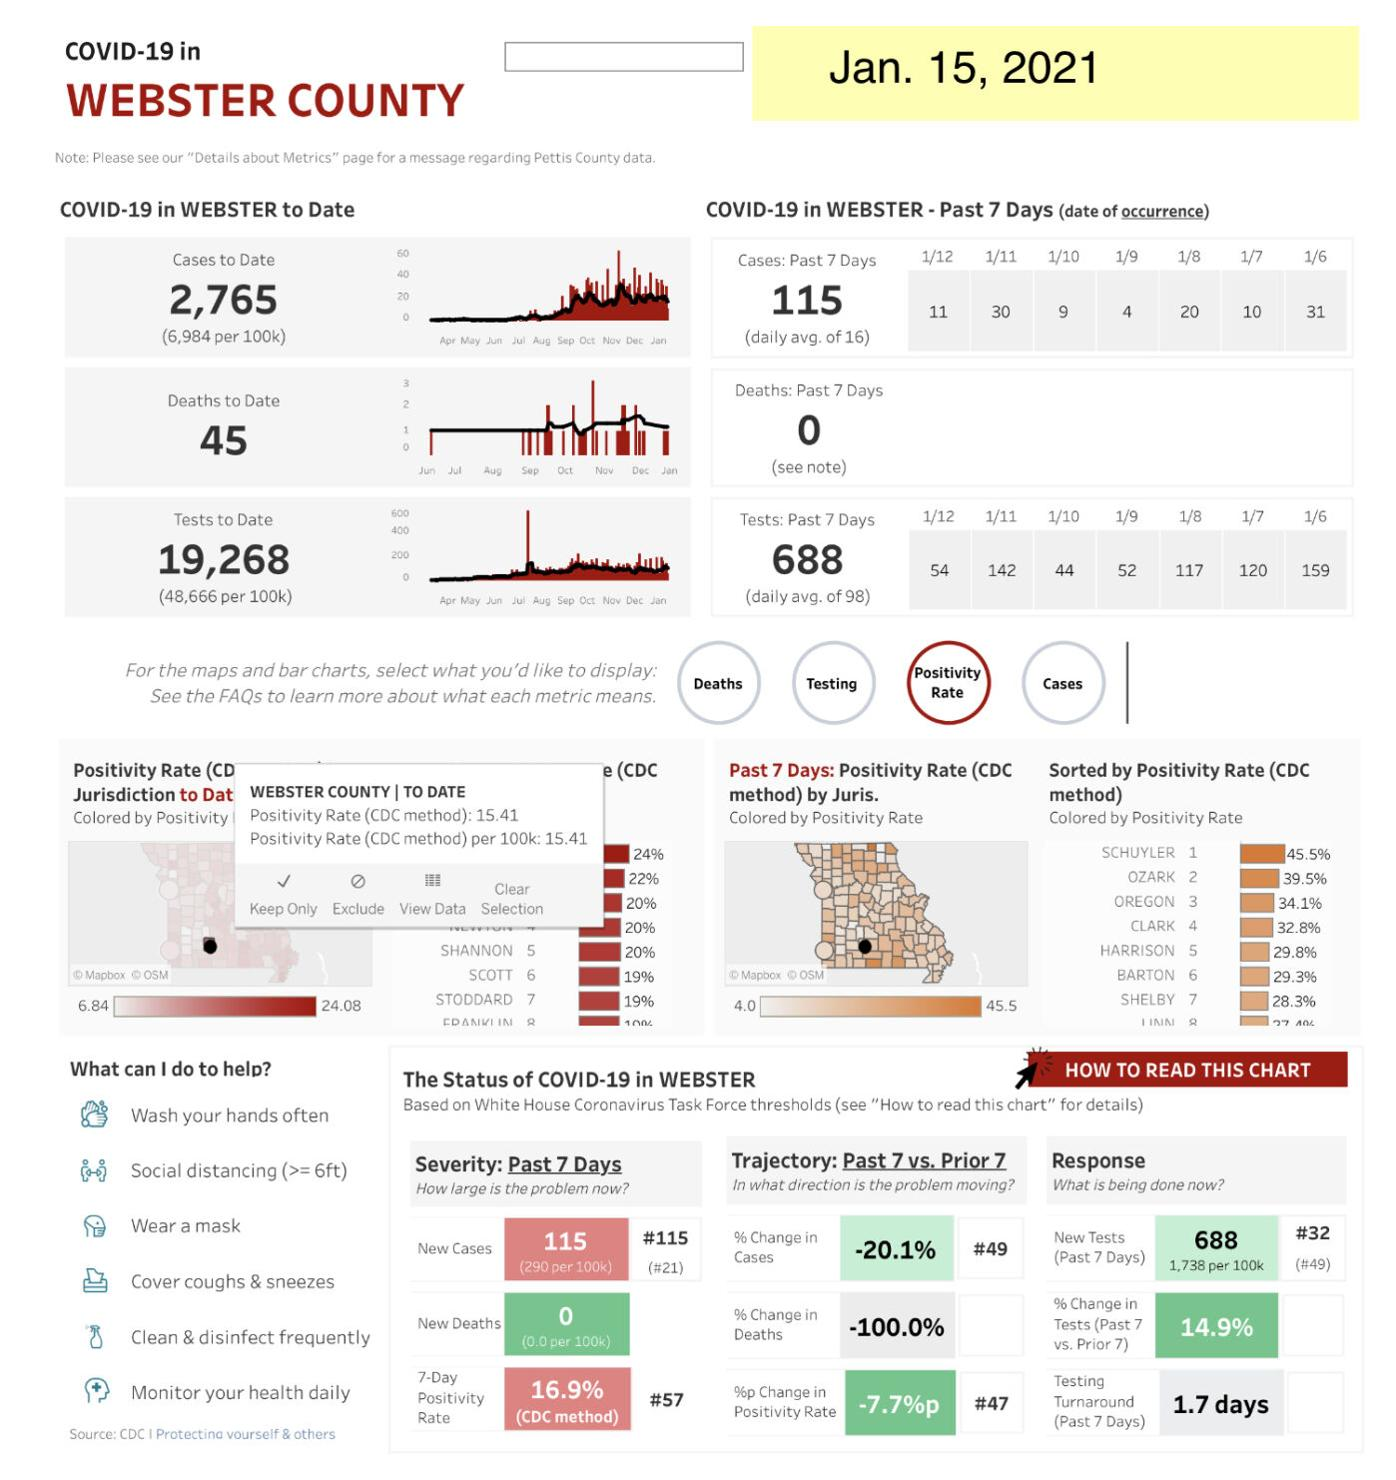 - COVID-19 cases Jan. 15 Web. Co. Mo. State